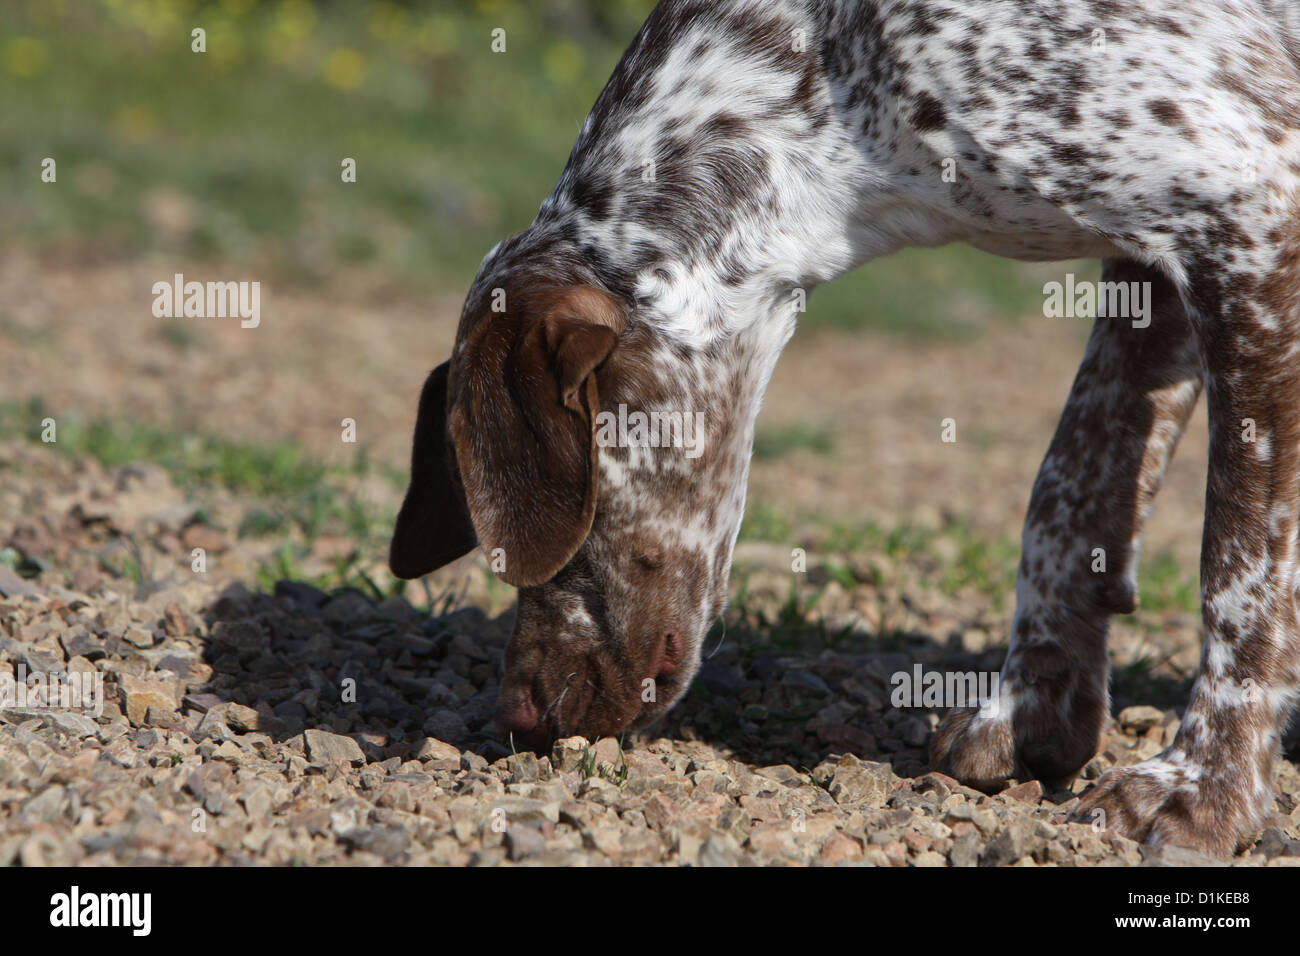 Dog Braque du Bourbonnais / Bourbonnais Pointing Dog  adult smell an odor - Stock Image